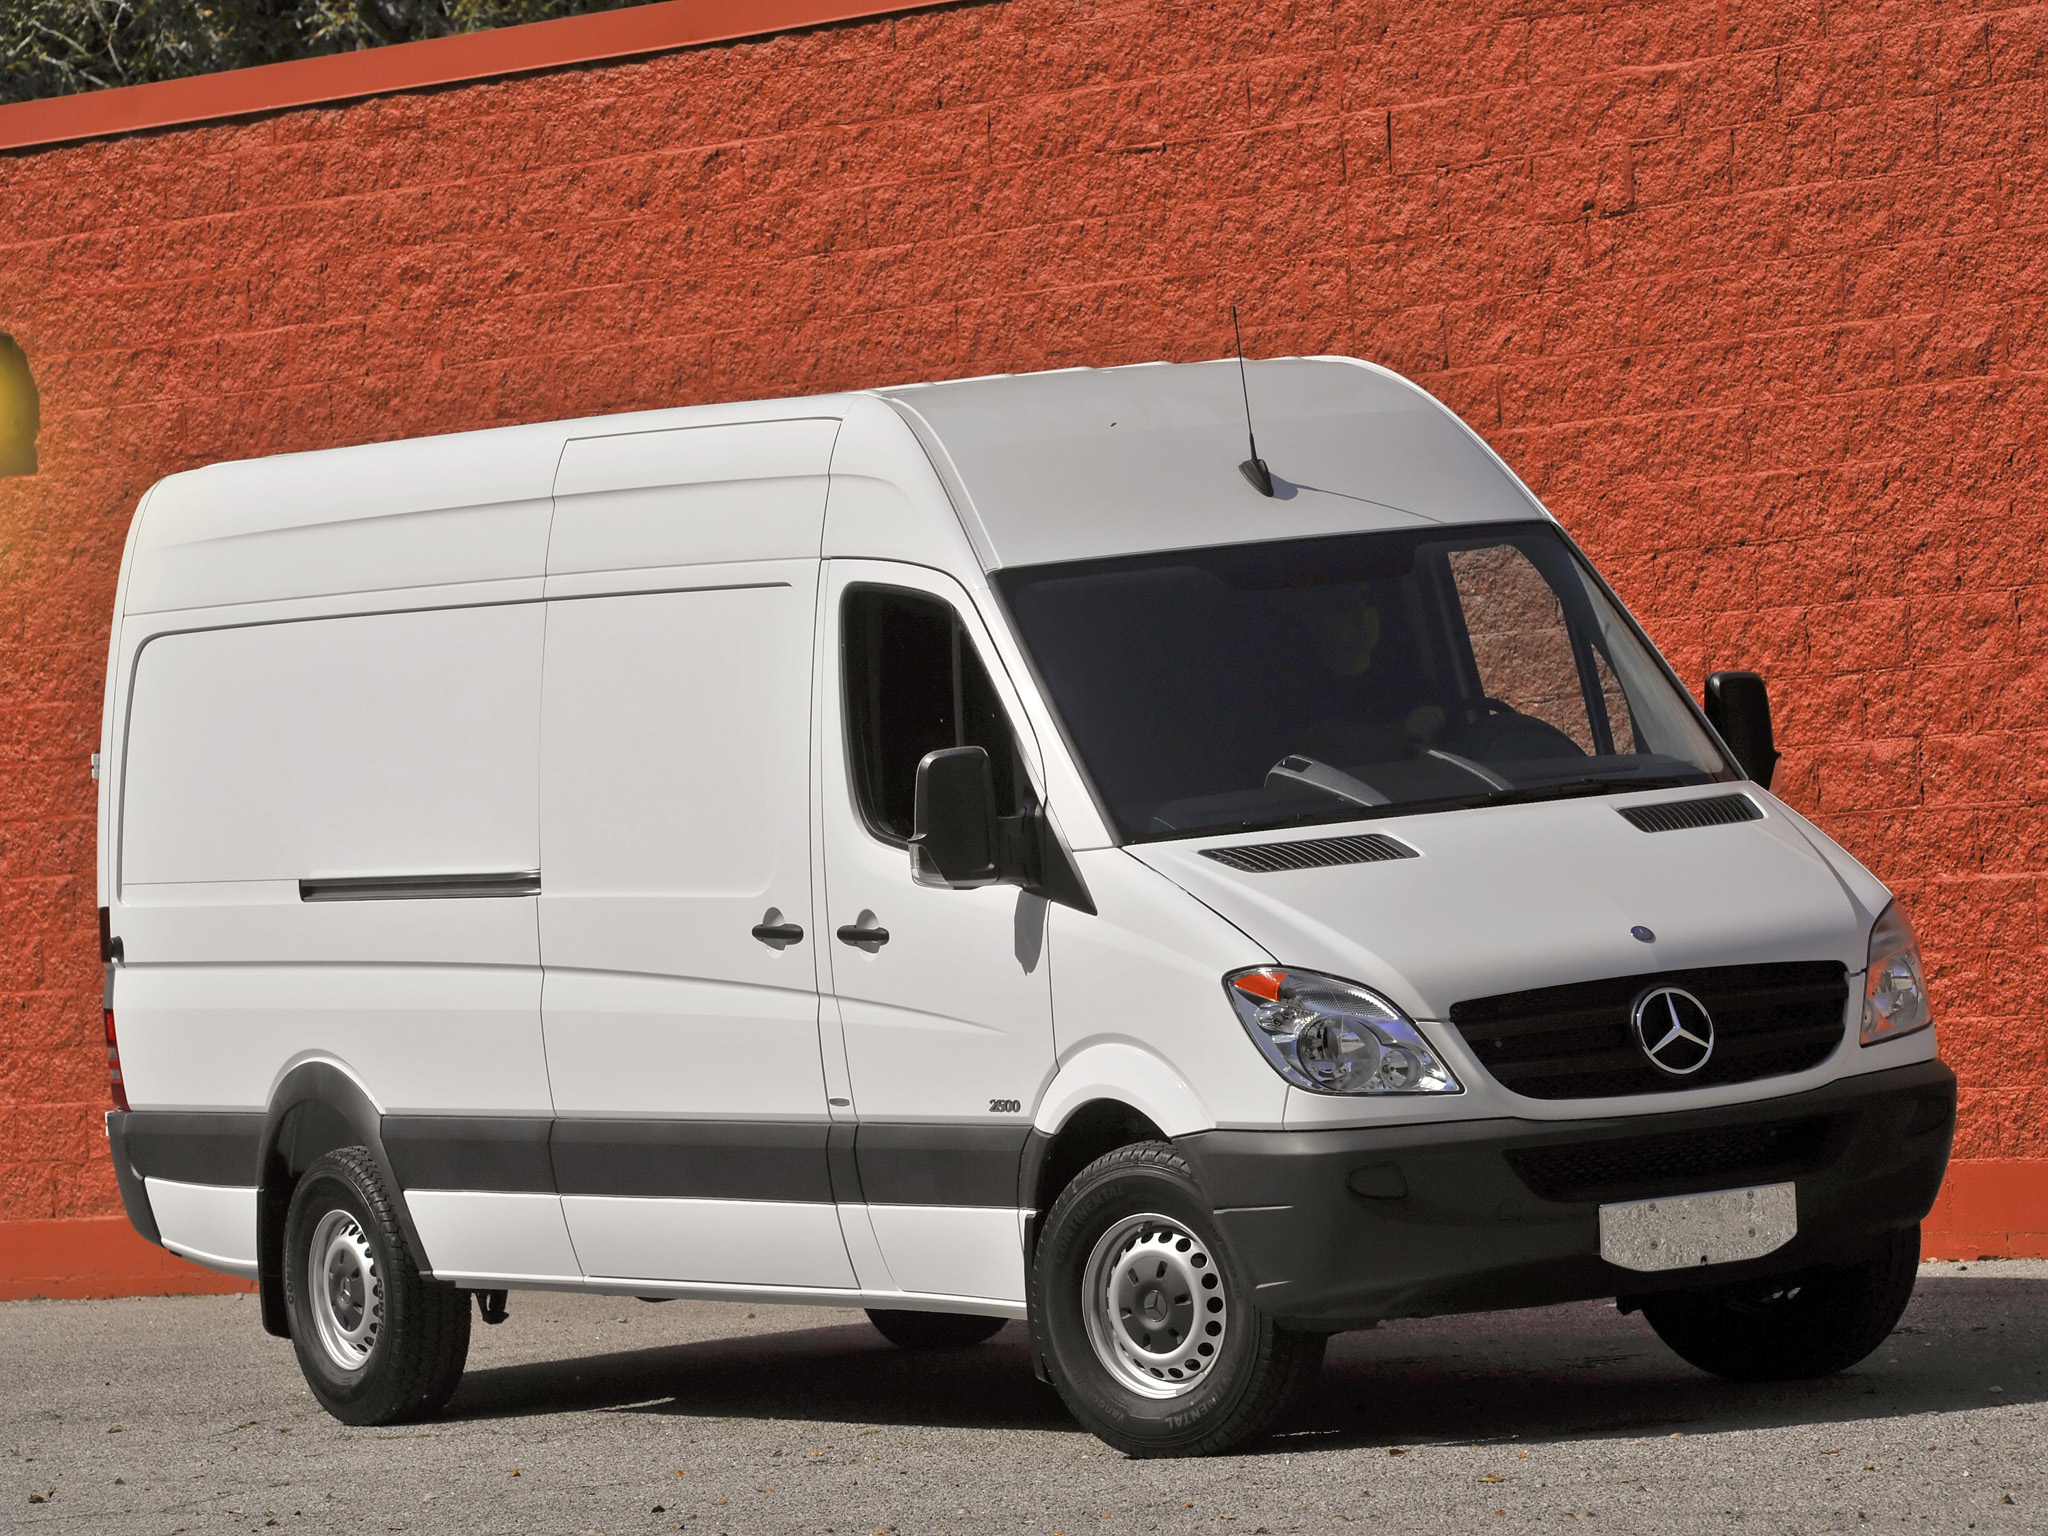 Фото автомобиля Mercedes-Benz Sprinter Fourgon